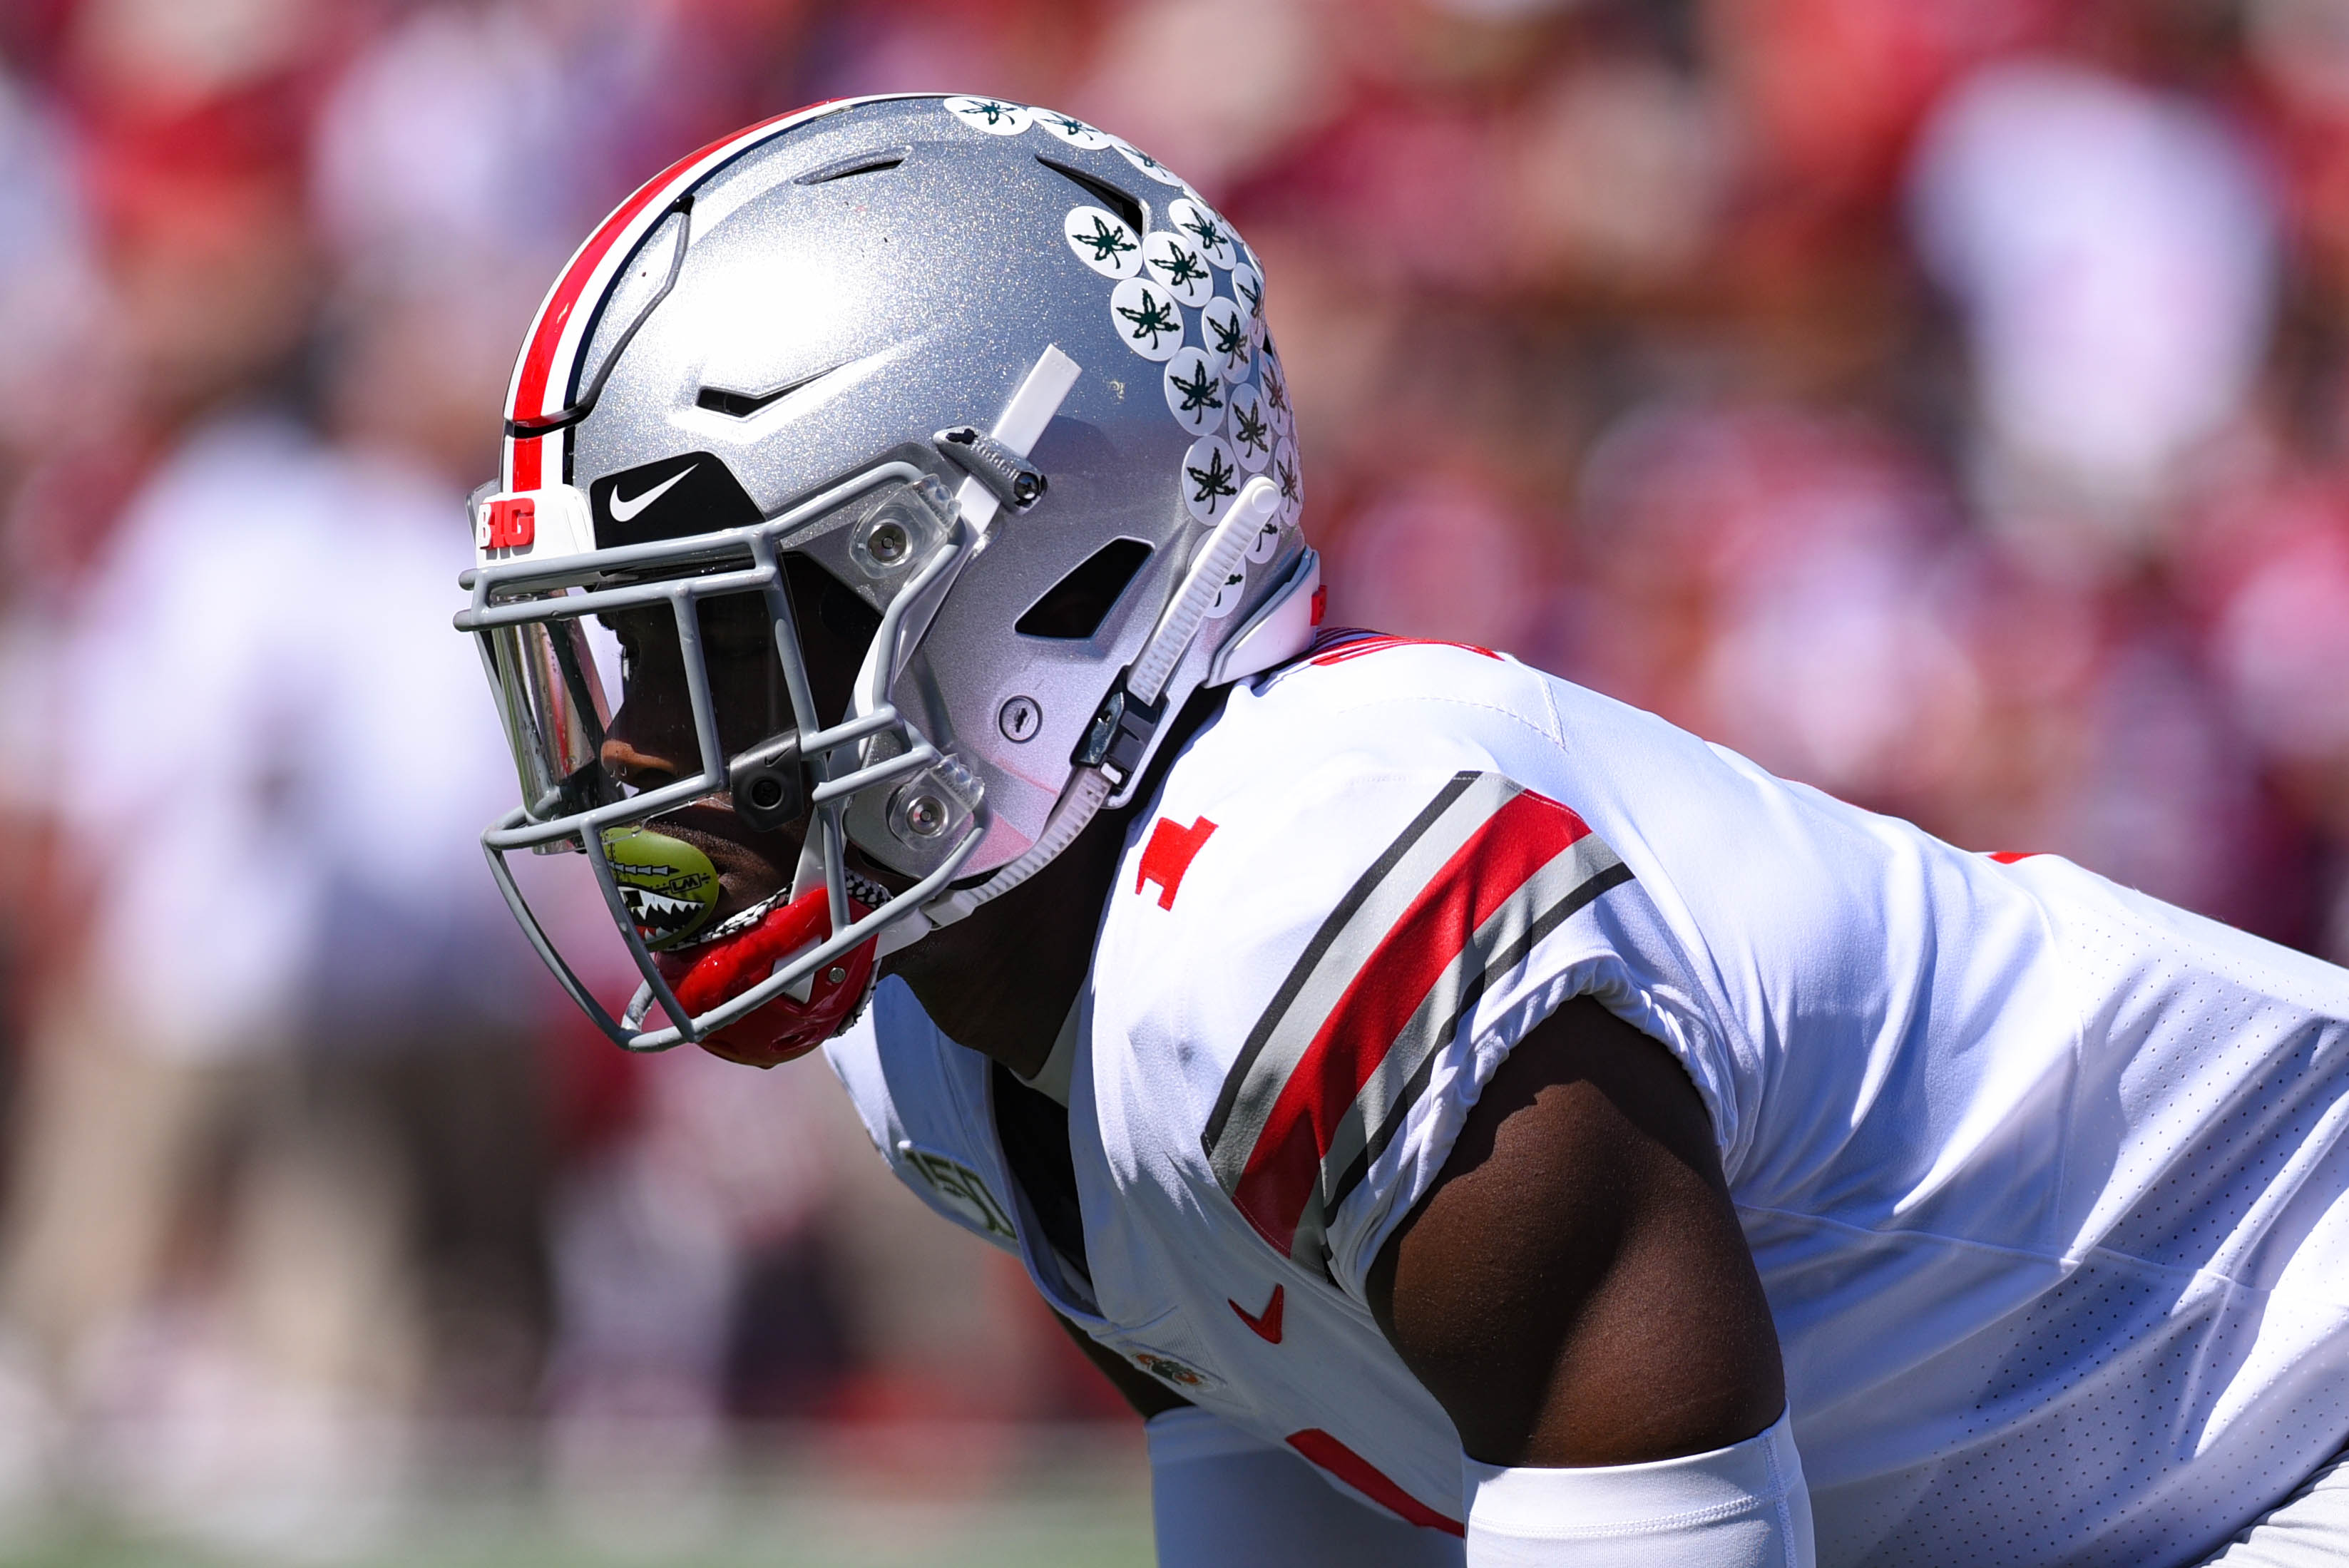 COLLEGE FOOTBALL: SEP 14 Ohio State at Indiana